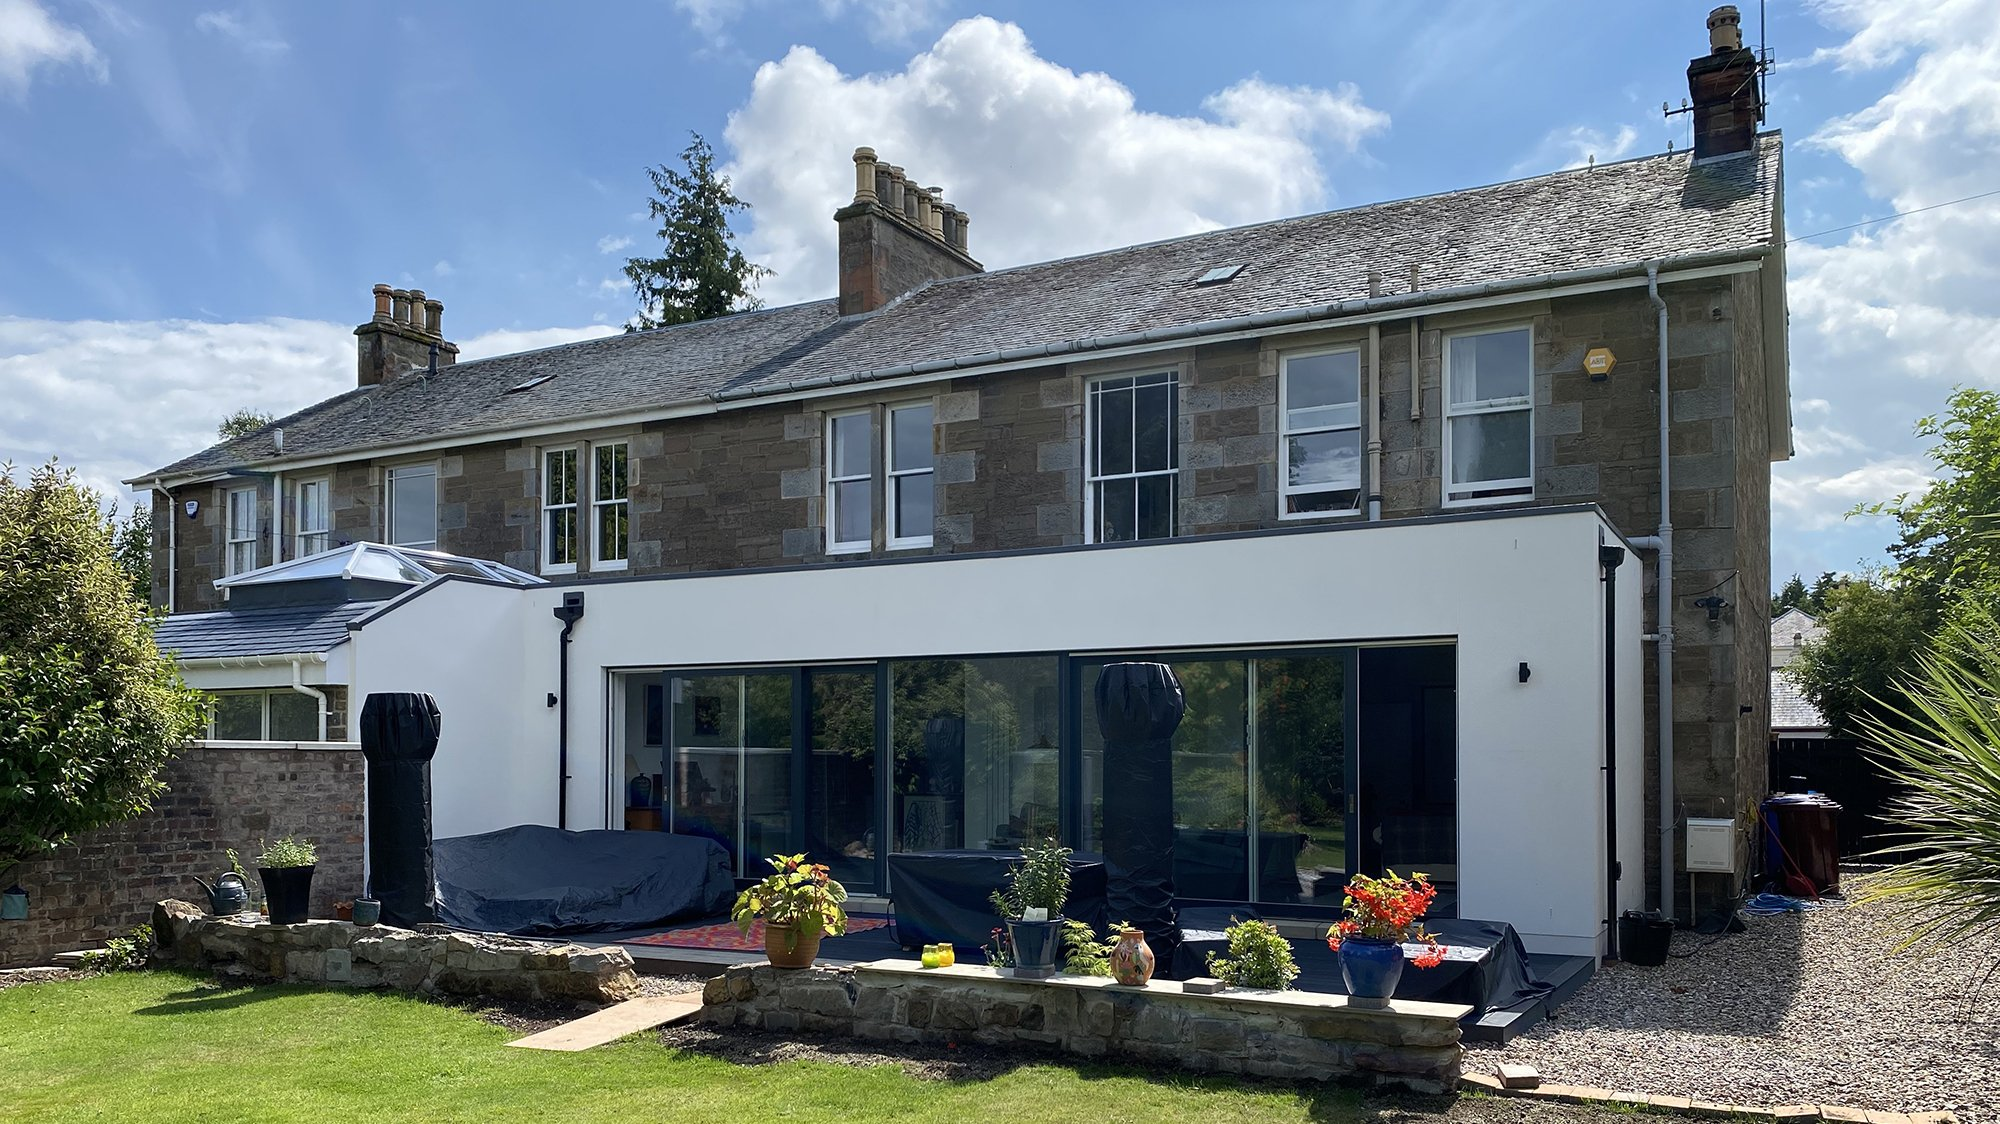 EXTENSIONS TO ADJOINING PROPERTIES, BROUGHTY FERRY